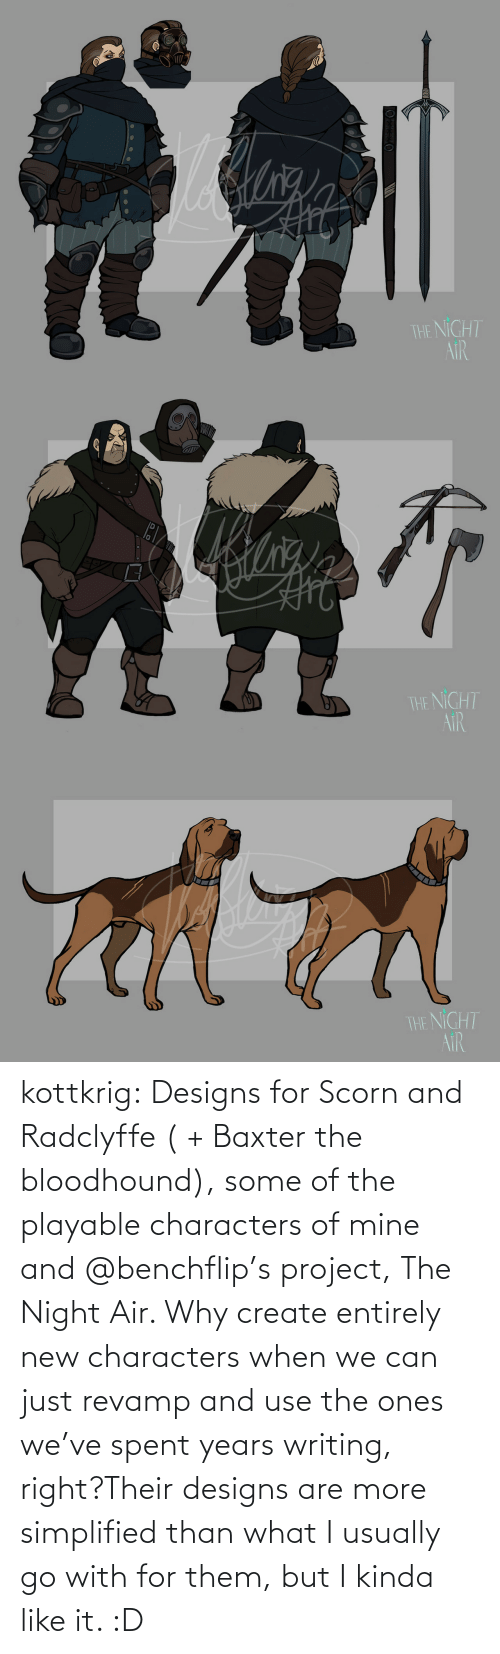 Tumblr, Blog, and Http: kottkrig:  Designs for Scorn and Radclyffe ( + Baxter the bloodhound), some of the playable characters of mine and @benchflip's project, The Night Air. Why create entirely new characters when we can just revamp and use the ones we've spent years writing, right?Their designs are more simplified than what I usually go with for them, but I kinda like it. :D